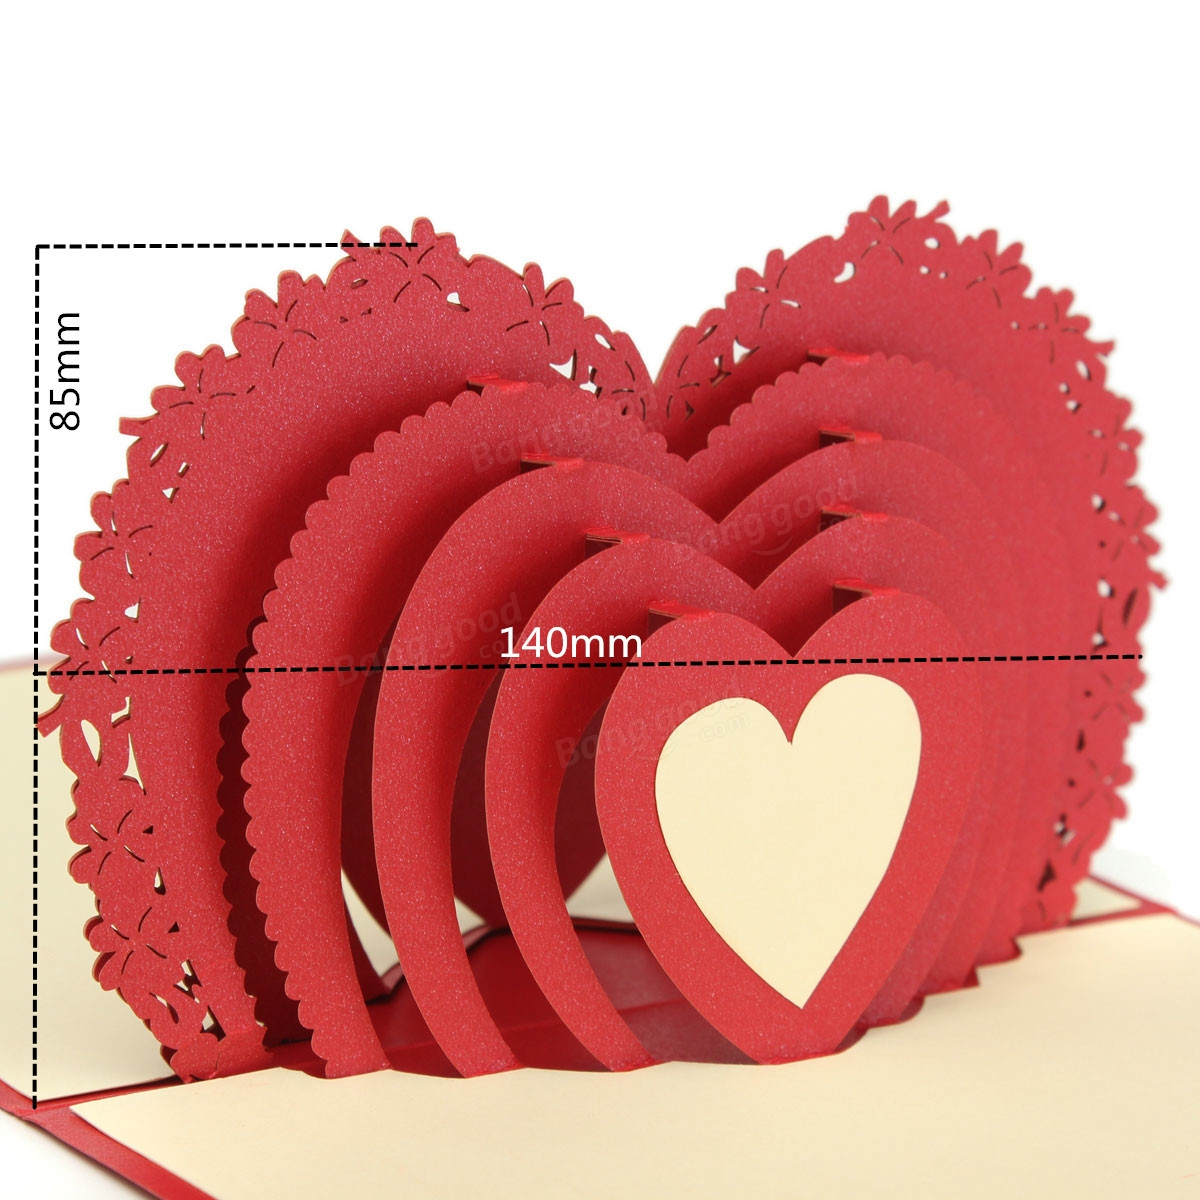 Red Heart 3D Pop Up Greeting Card Valentine Proposal Wedding Party – Hamster Valentine Cards